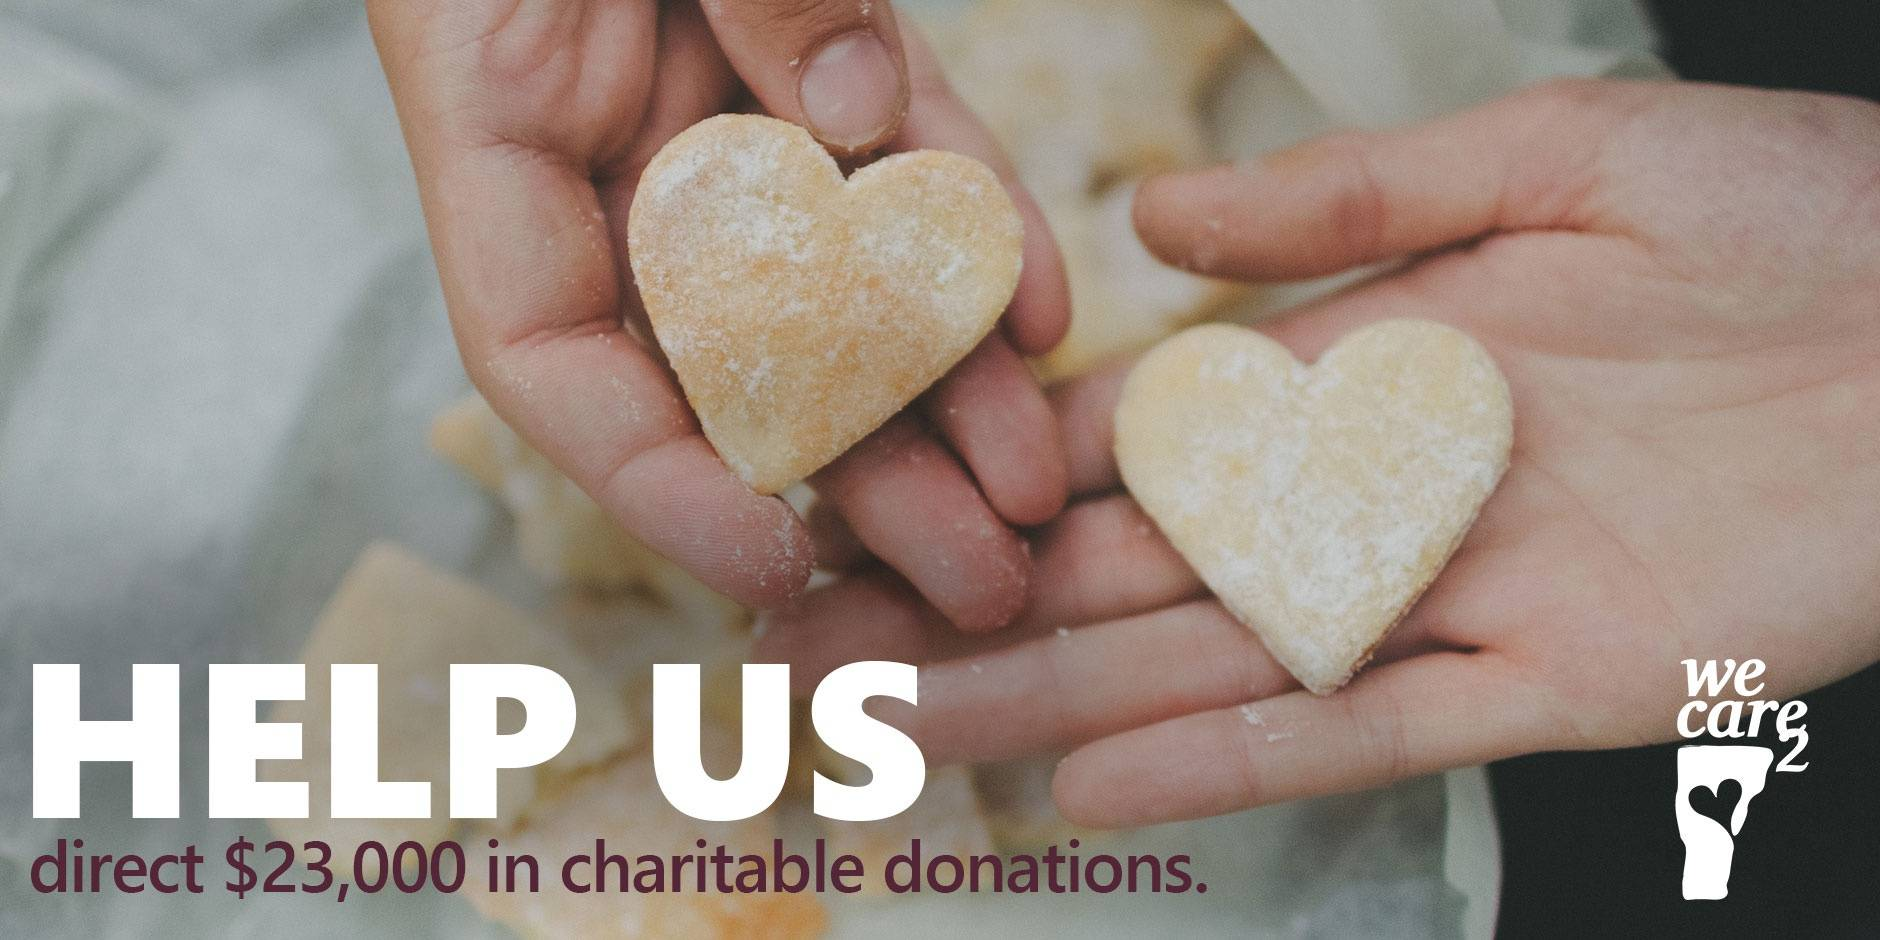 Help Fund Your Favorite Charity